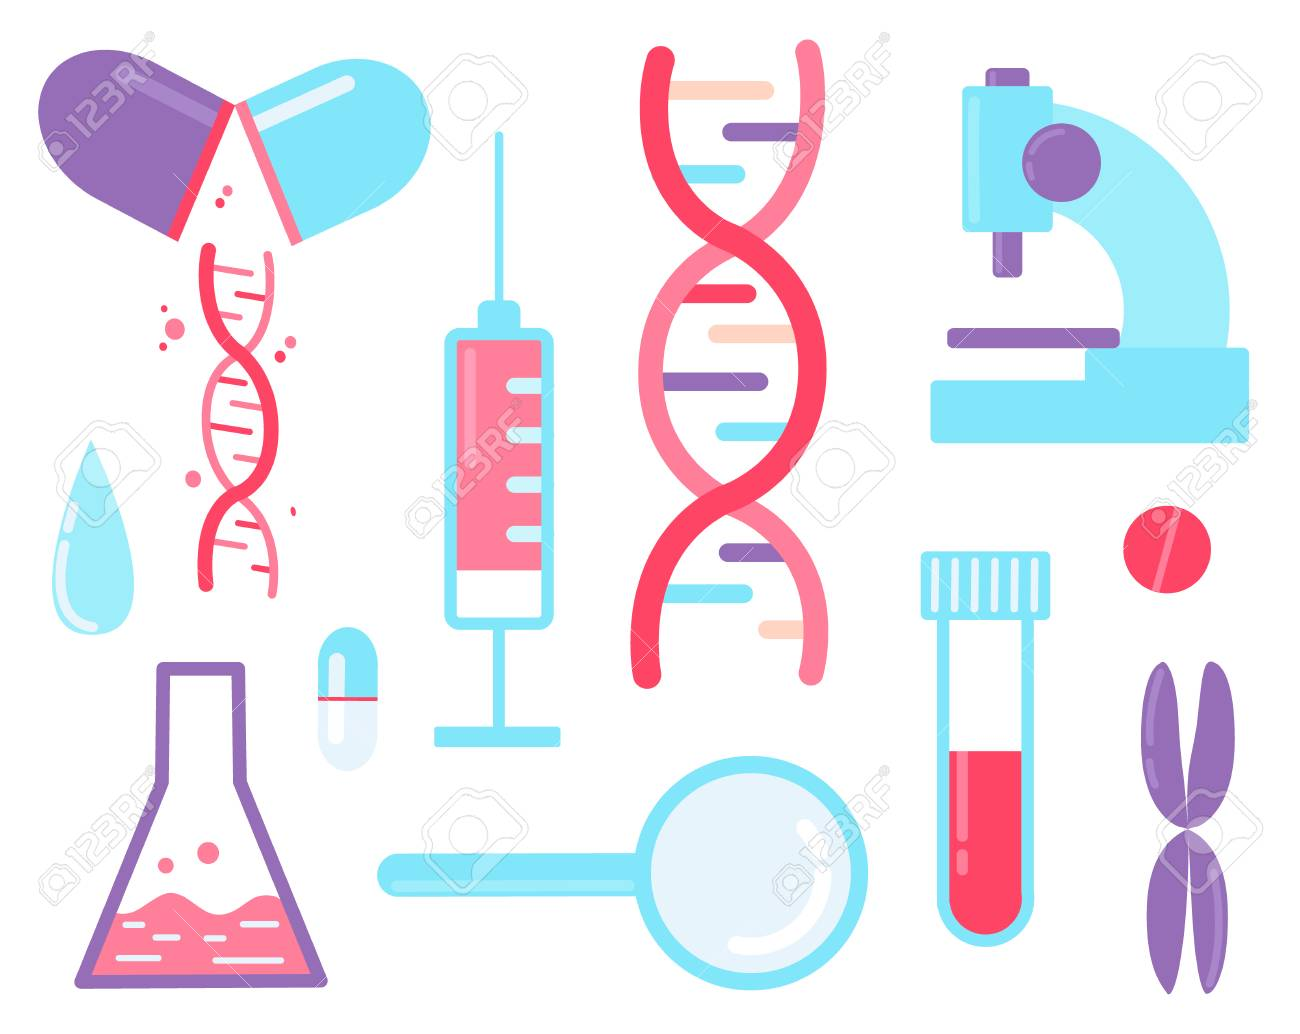 Genome sequencing - medical test. Set of elements dna, syringe, magnifier, microscope and pills. - 112595128